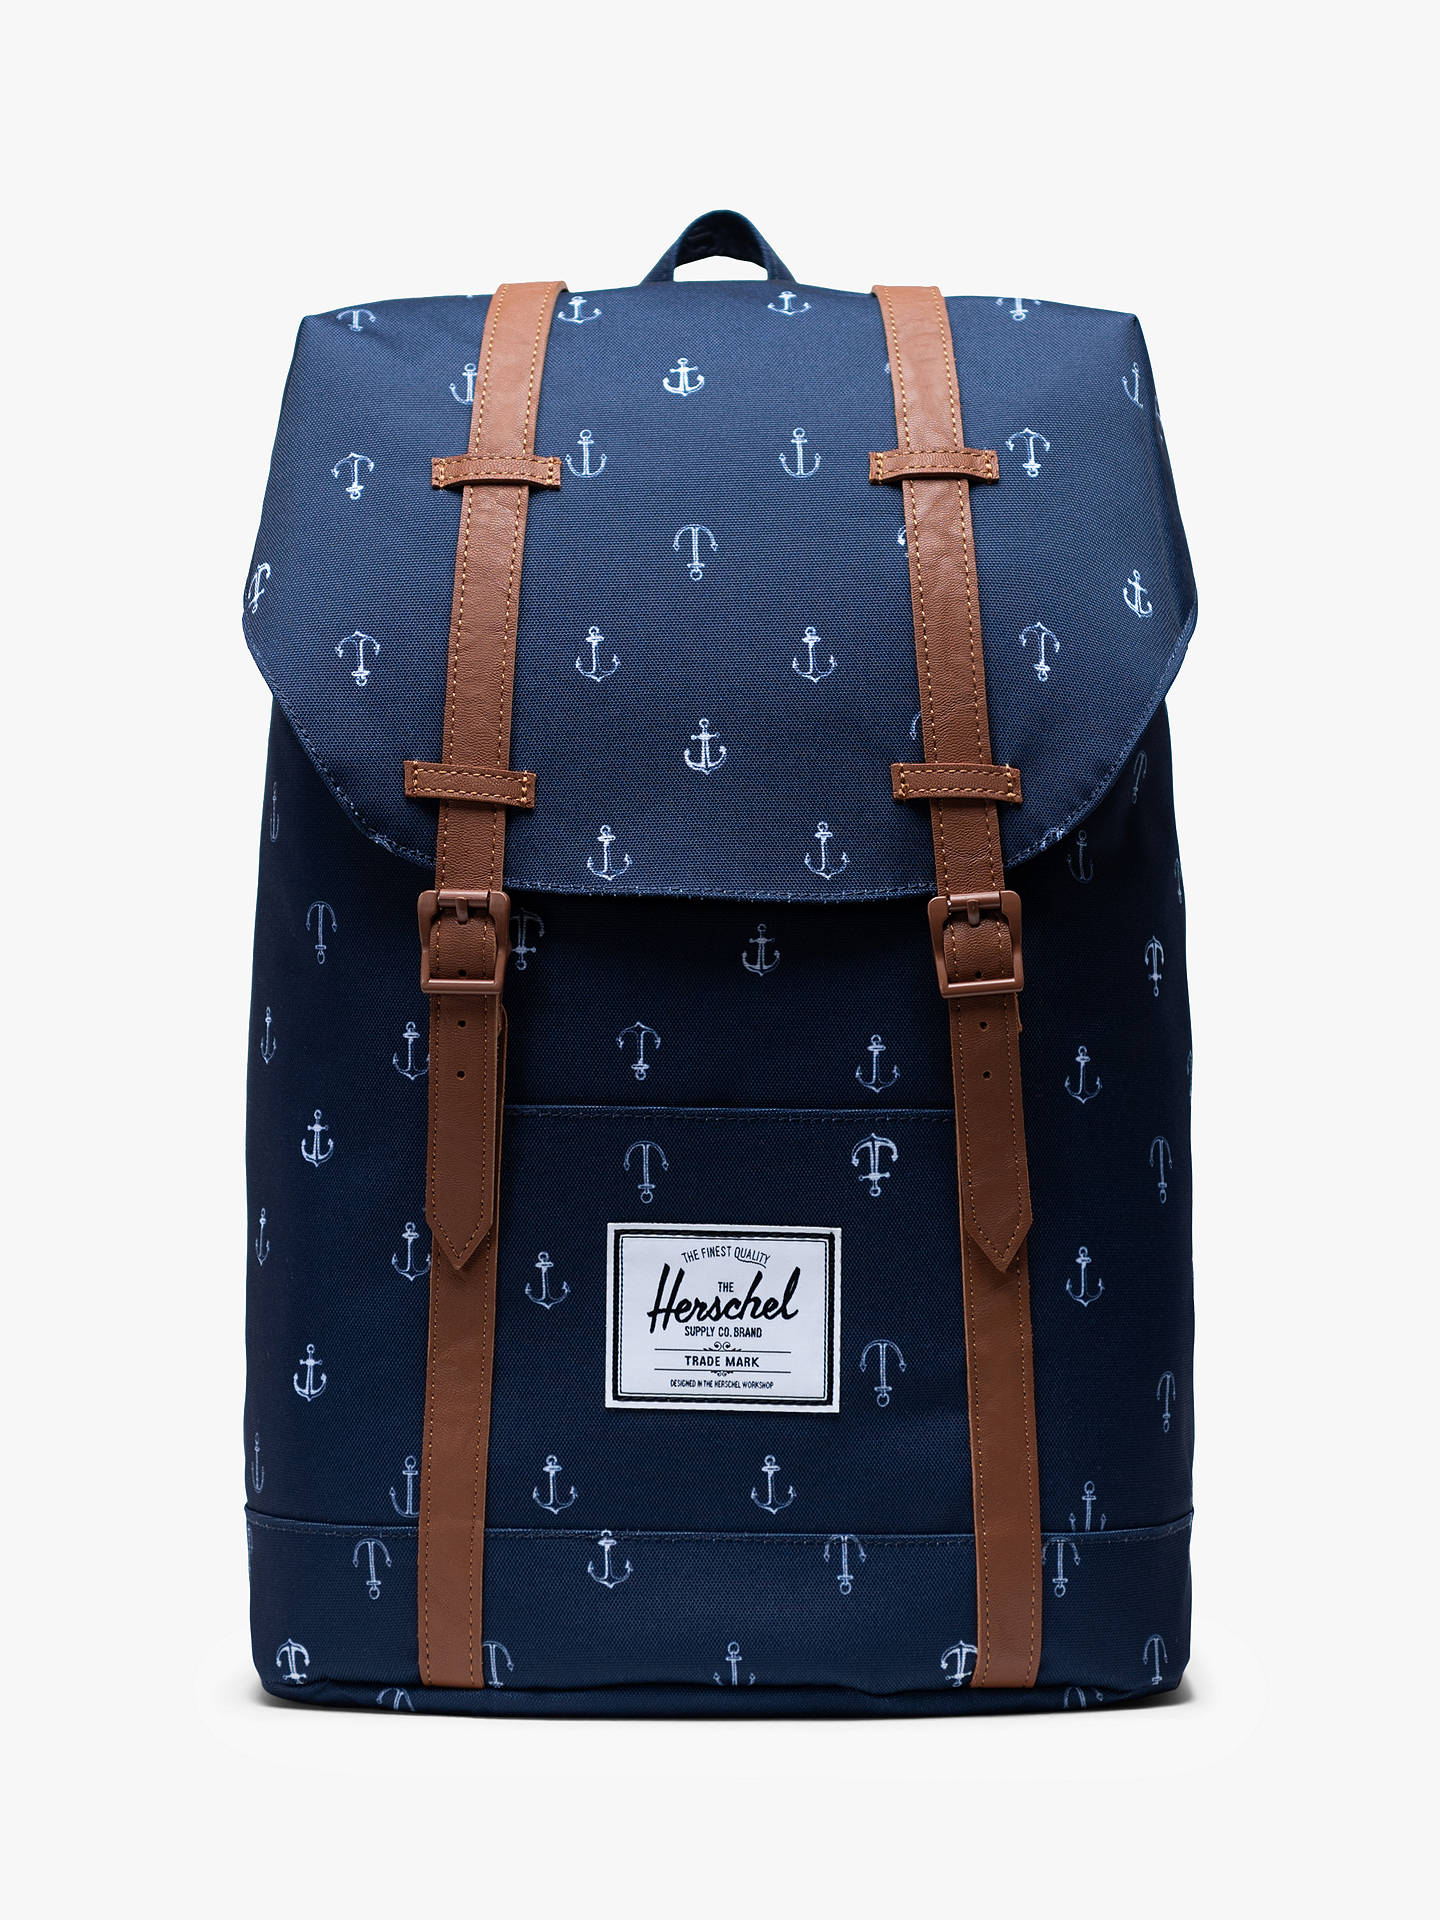 49e82e844 Buy Herschel Supply Co. Retreat Anchor Print Backpack, Peacoat/Anchor  Online at johnlewis ...